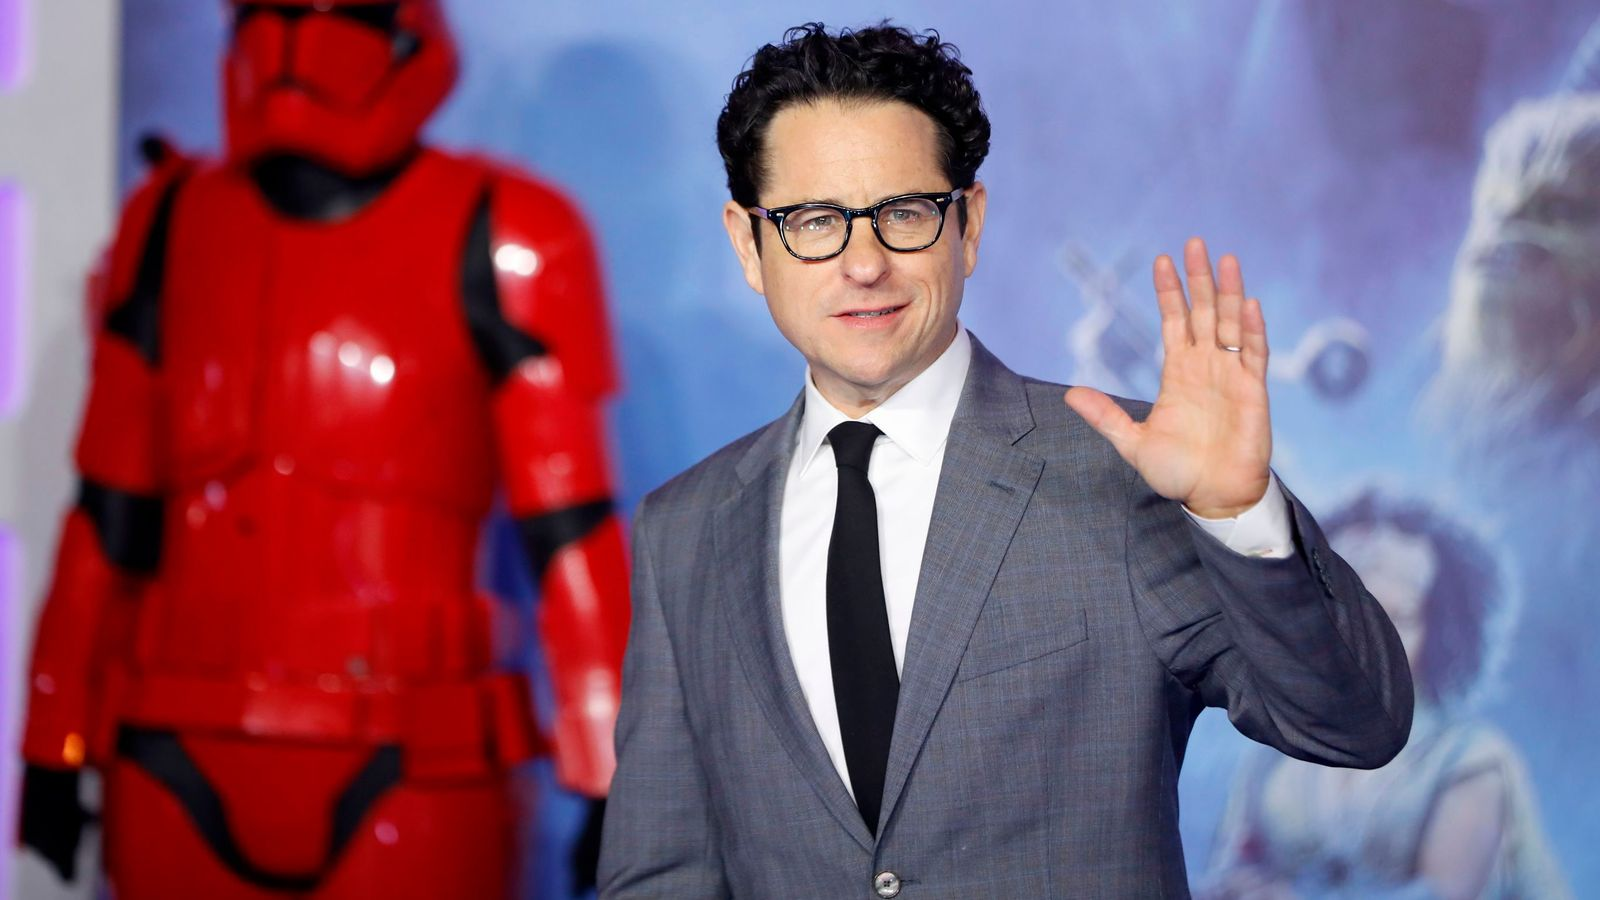 Star Wars Jj Abrams Hopes Fans Will Be Open Minded About The Rise Of Skywalker Uk News Sky News